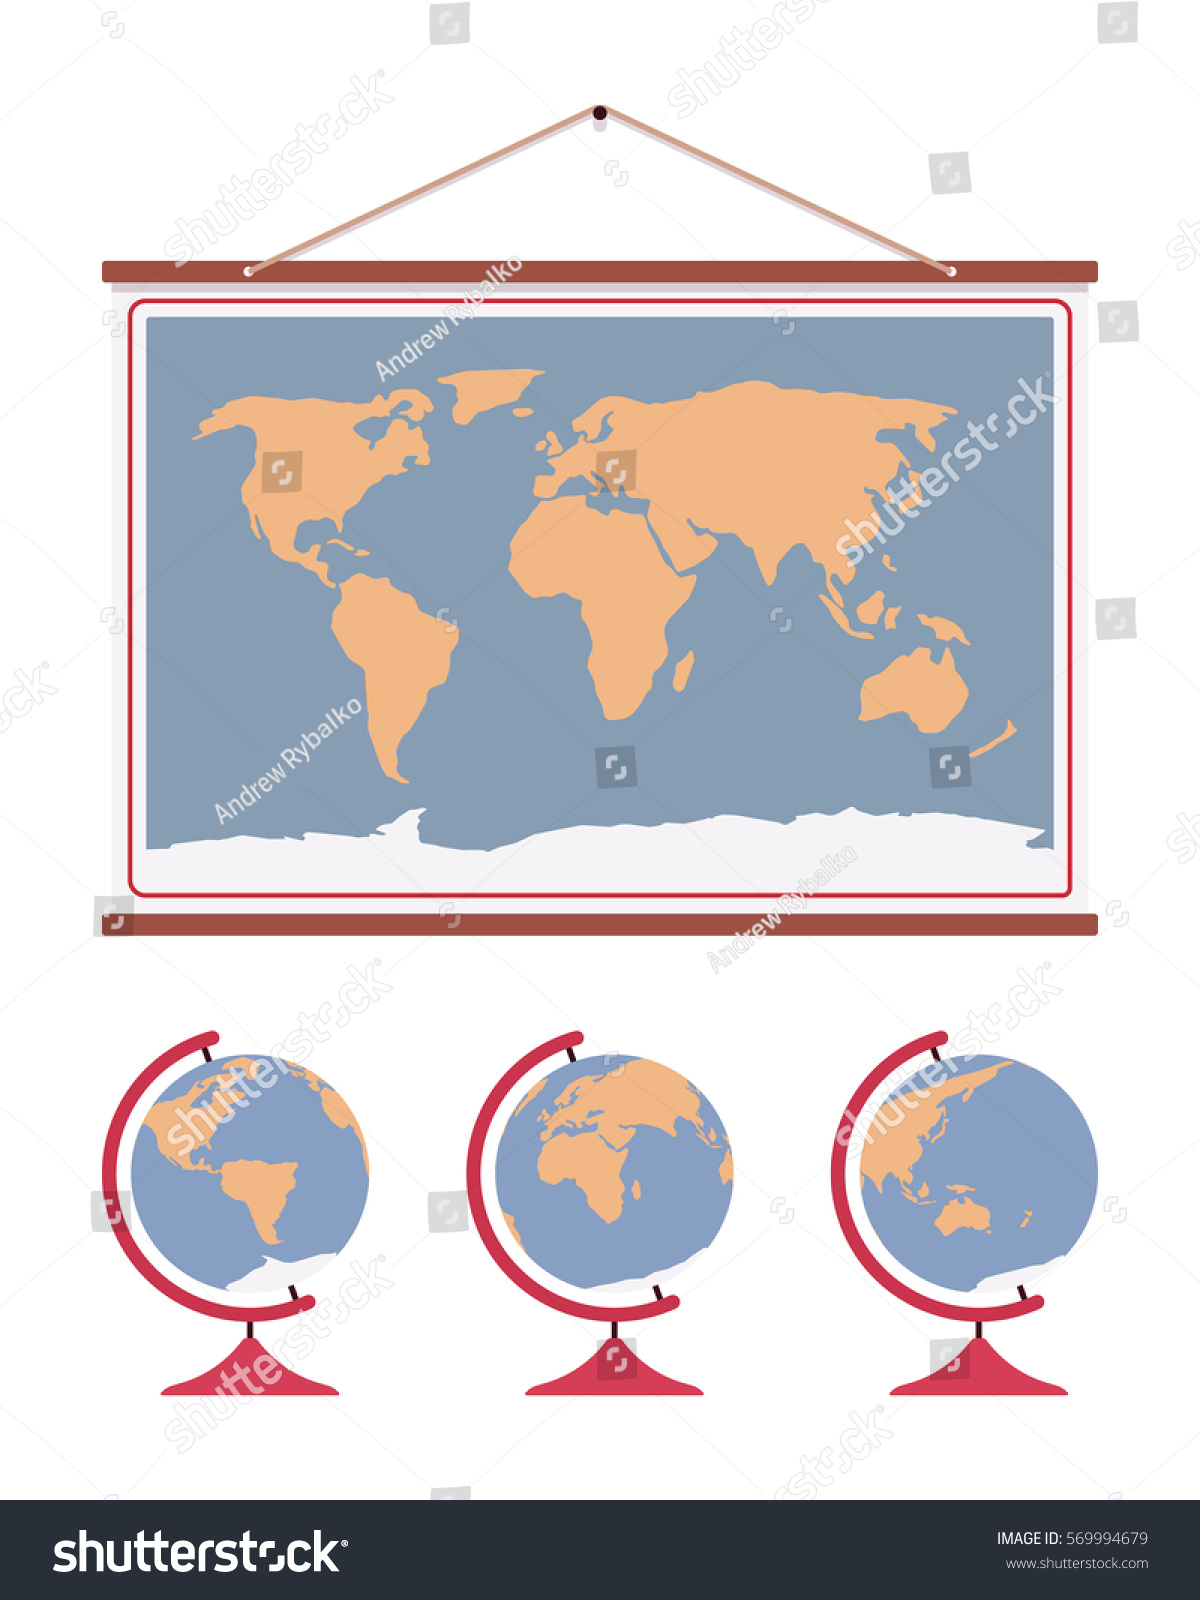 Hanging world map decoration accent office vectores en stock hanging world map decoration to accent office or home walls poster for educational purpose gumiabroncs Choice Image